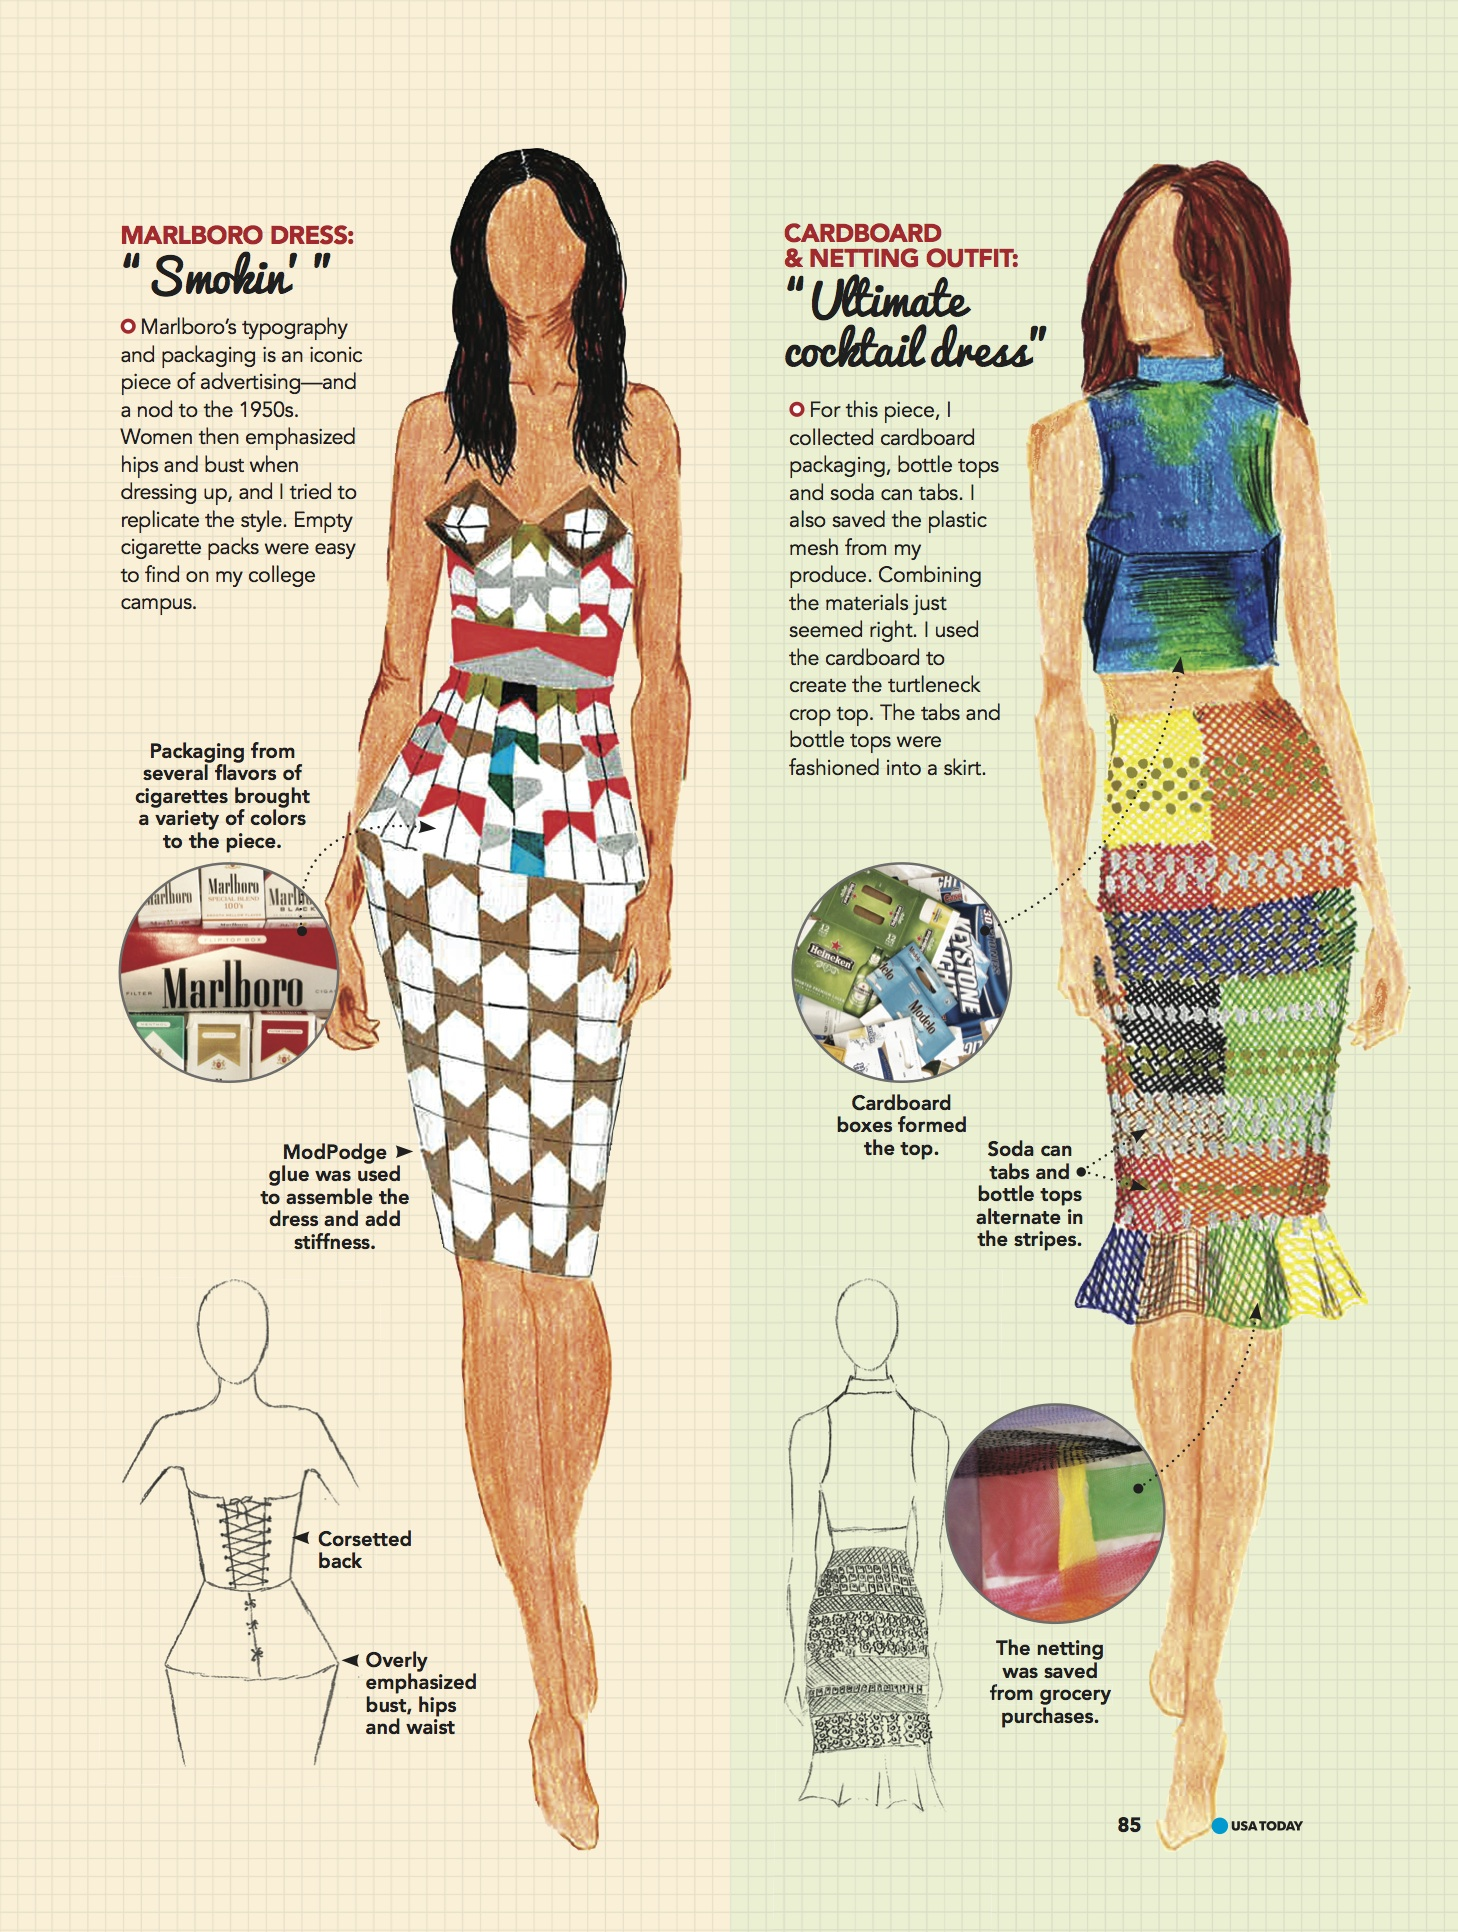 GREEN LIVING_page85 Fashion Illustrations